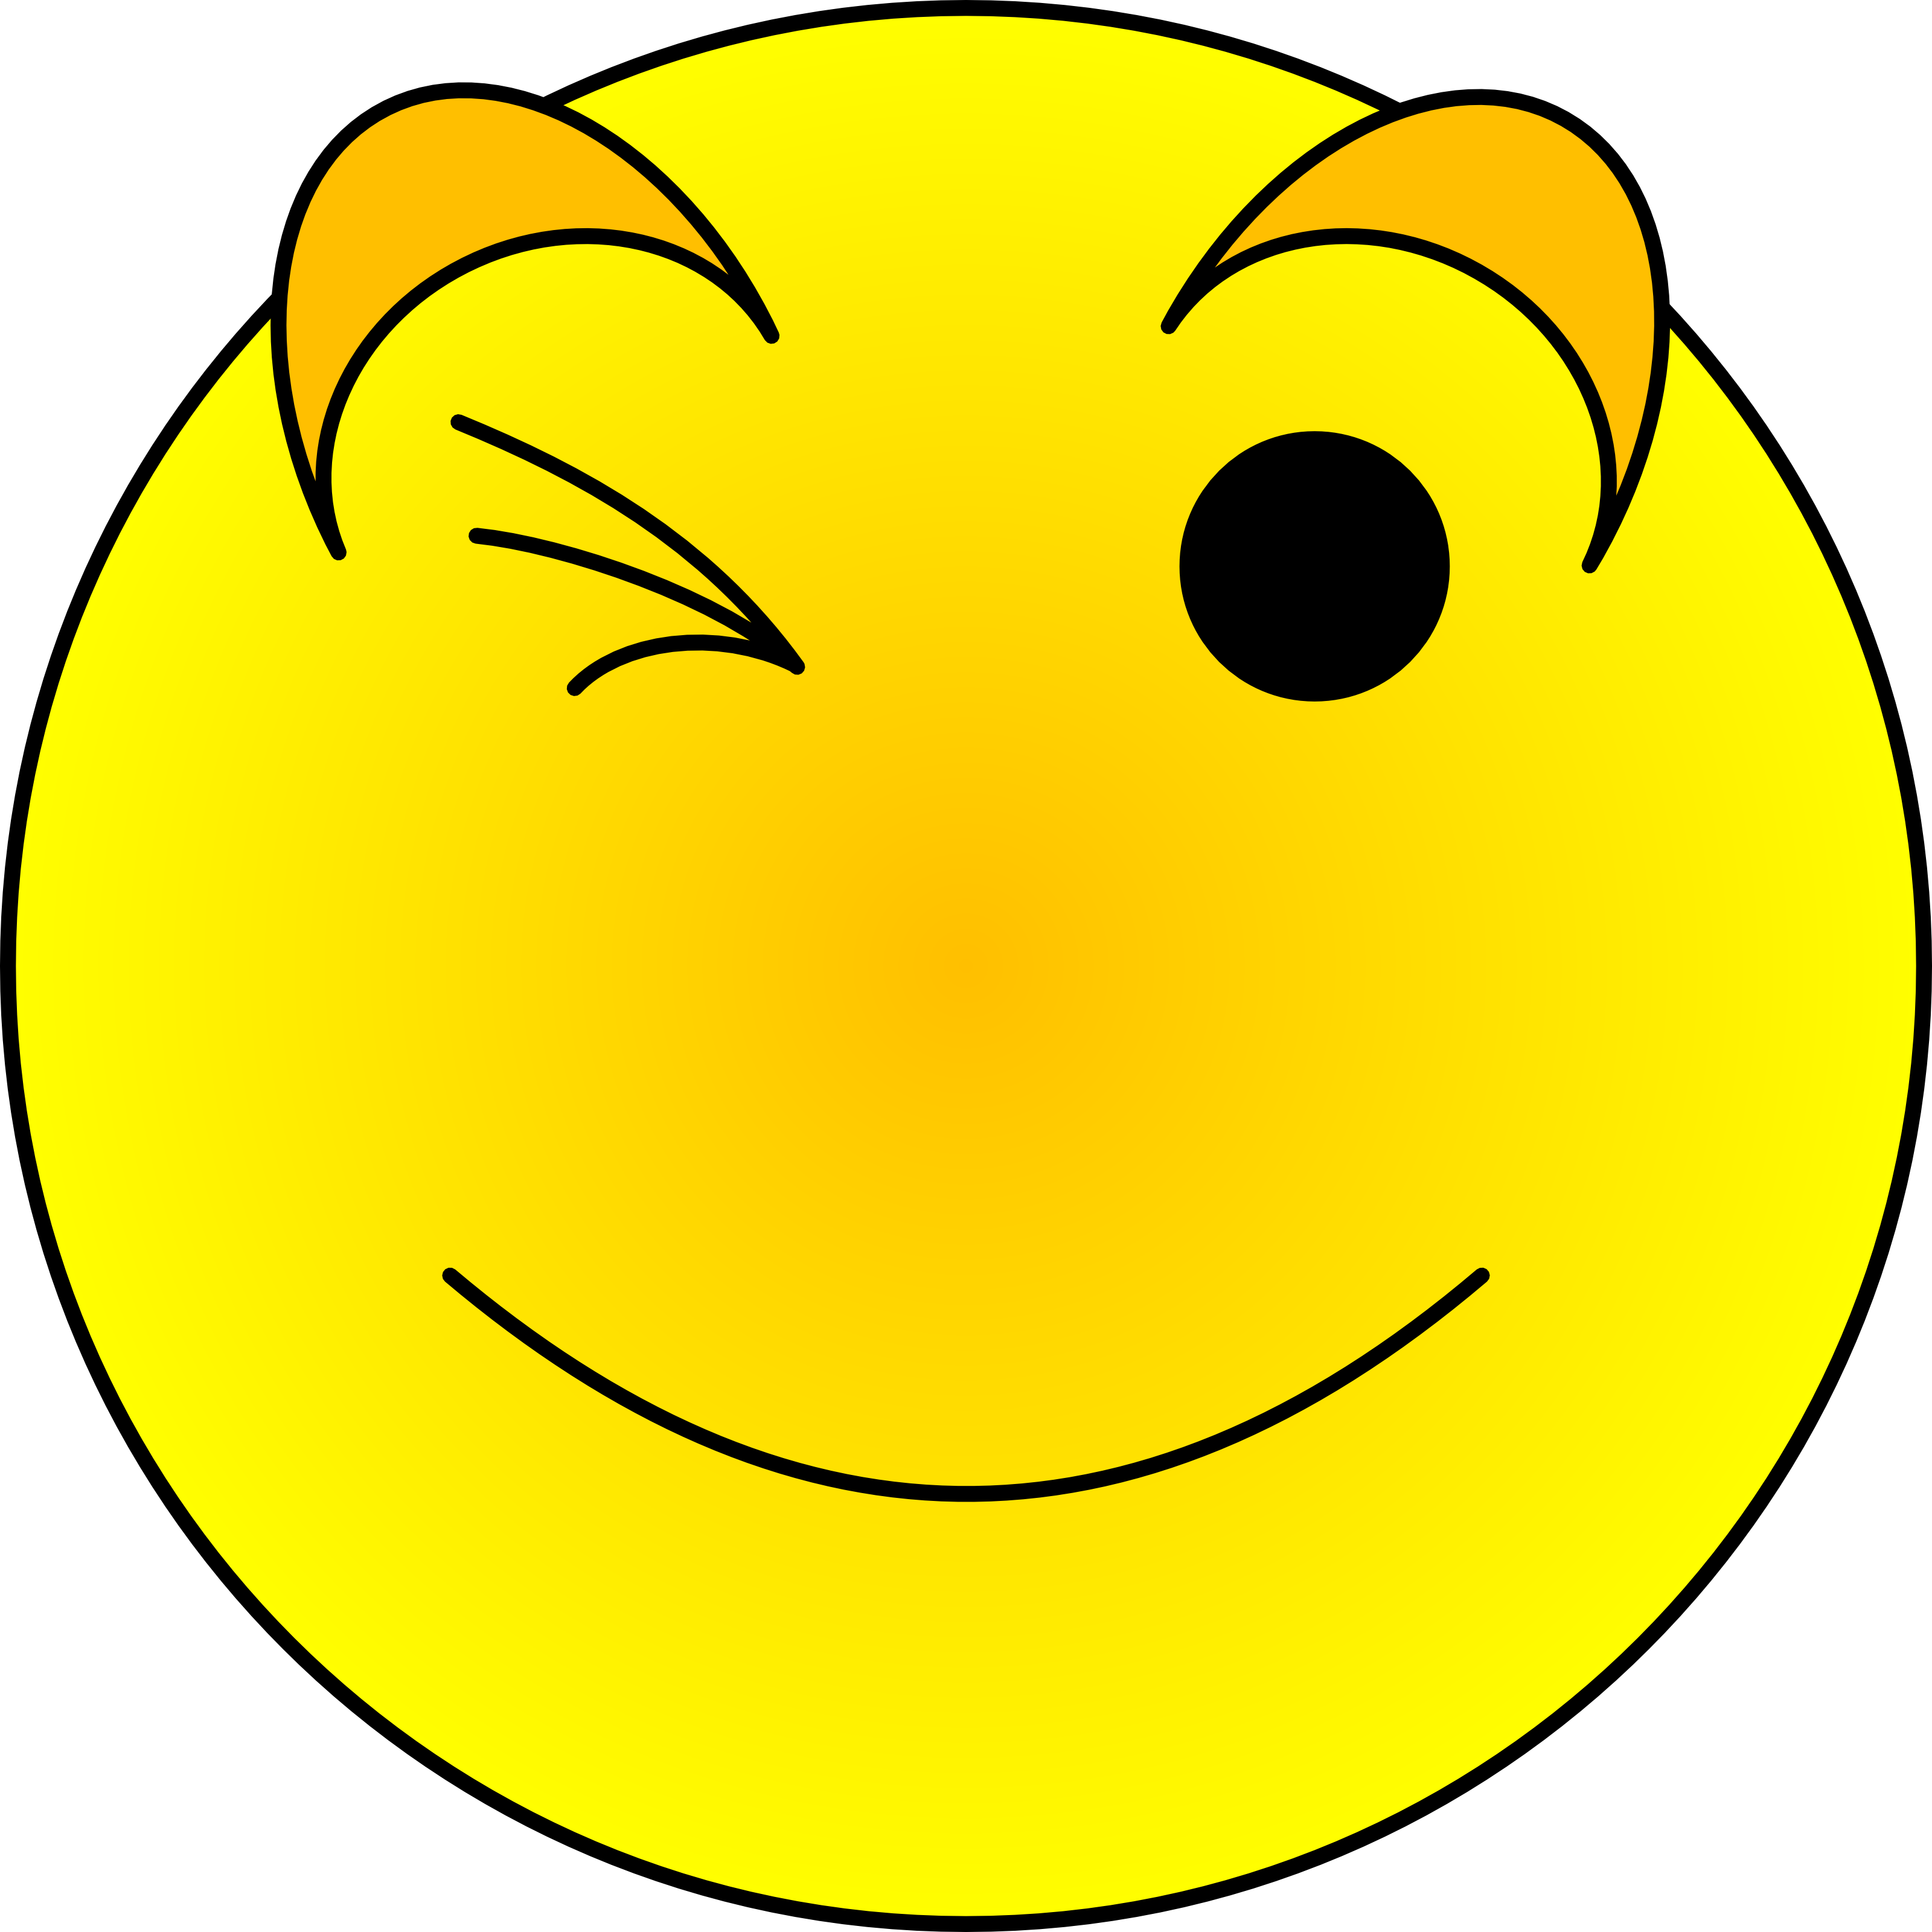 clipart free emoticons - photo #6